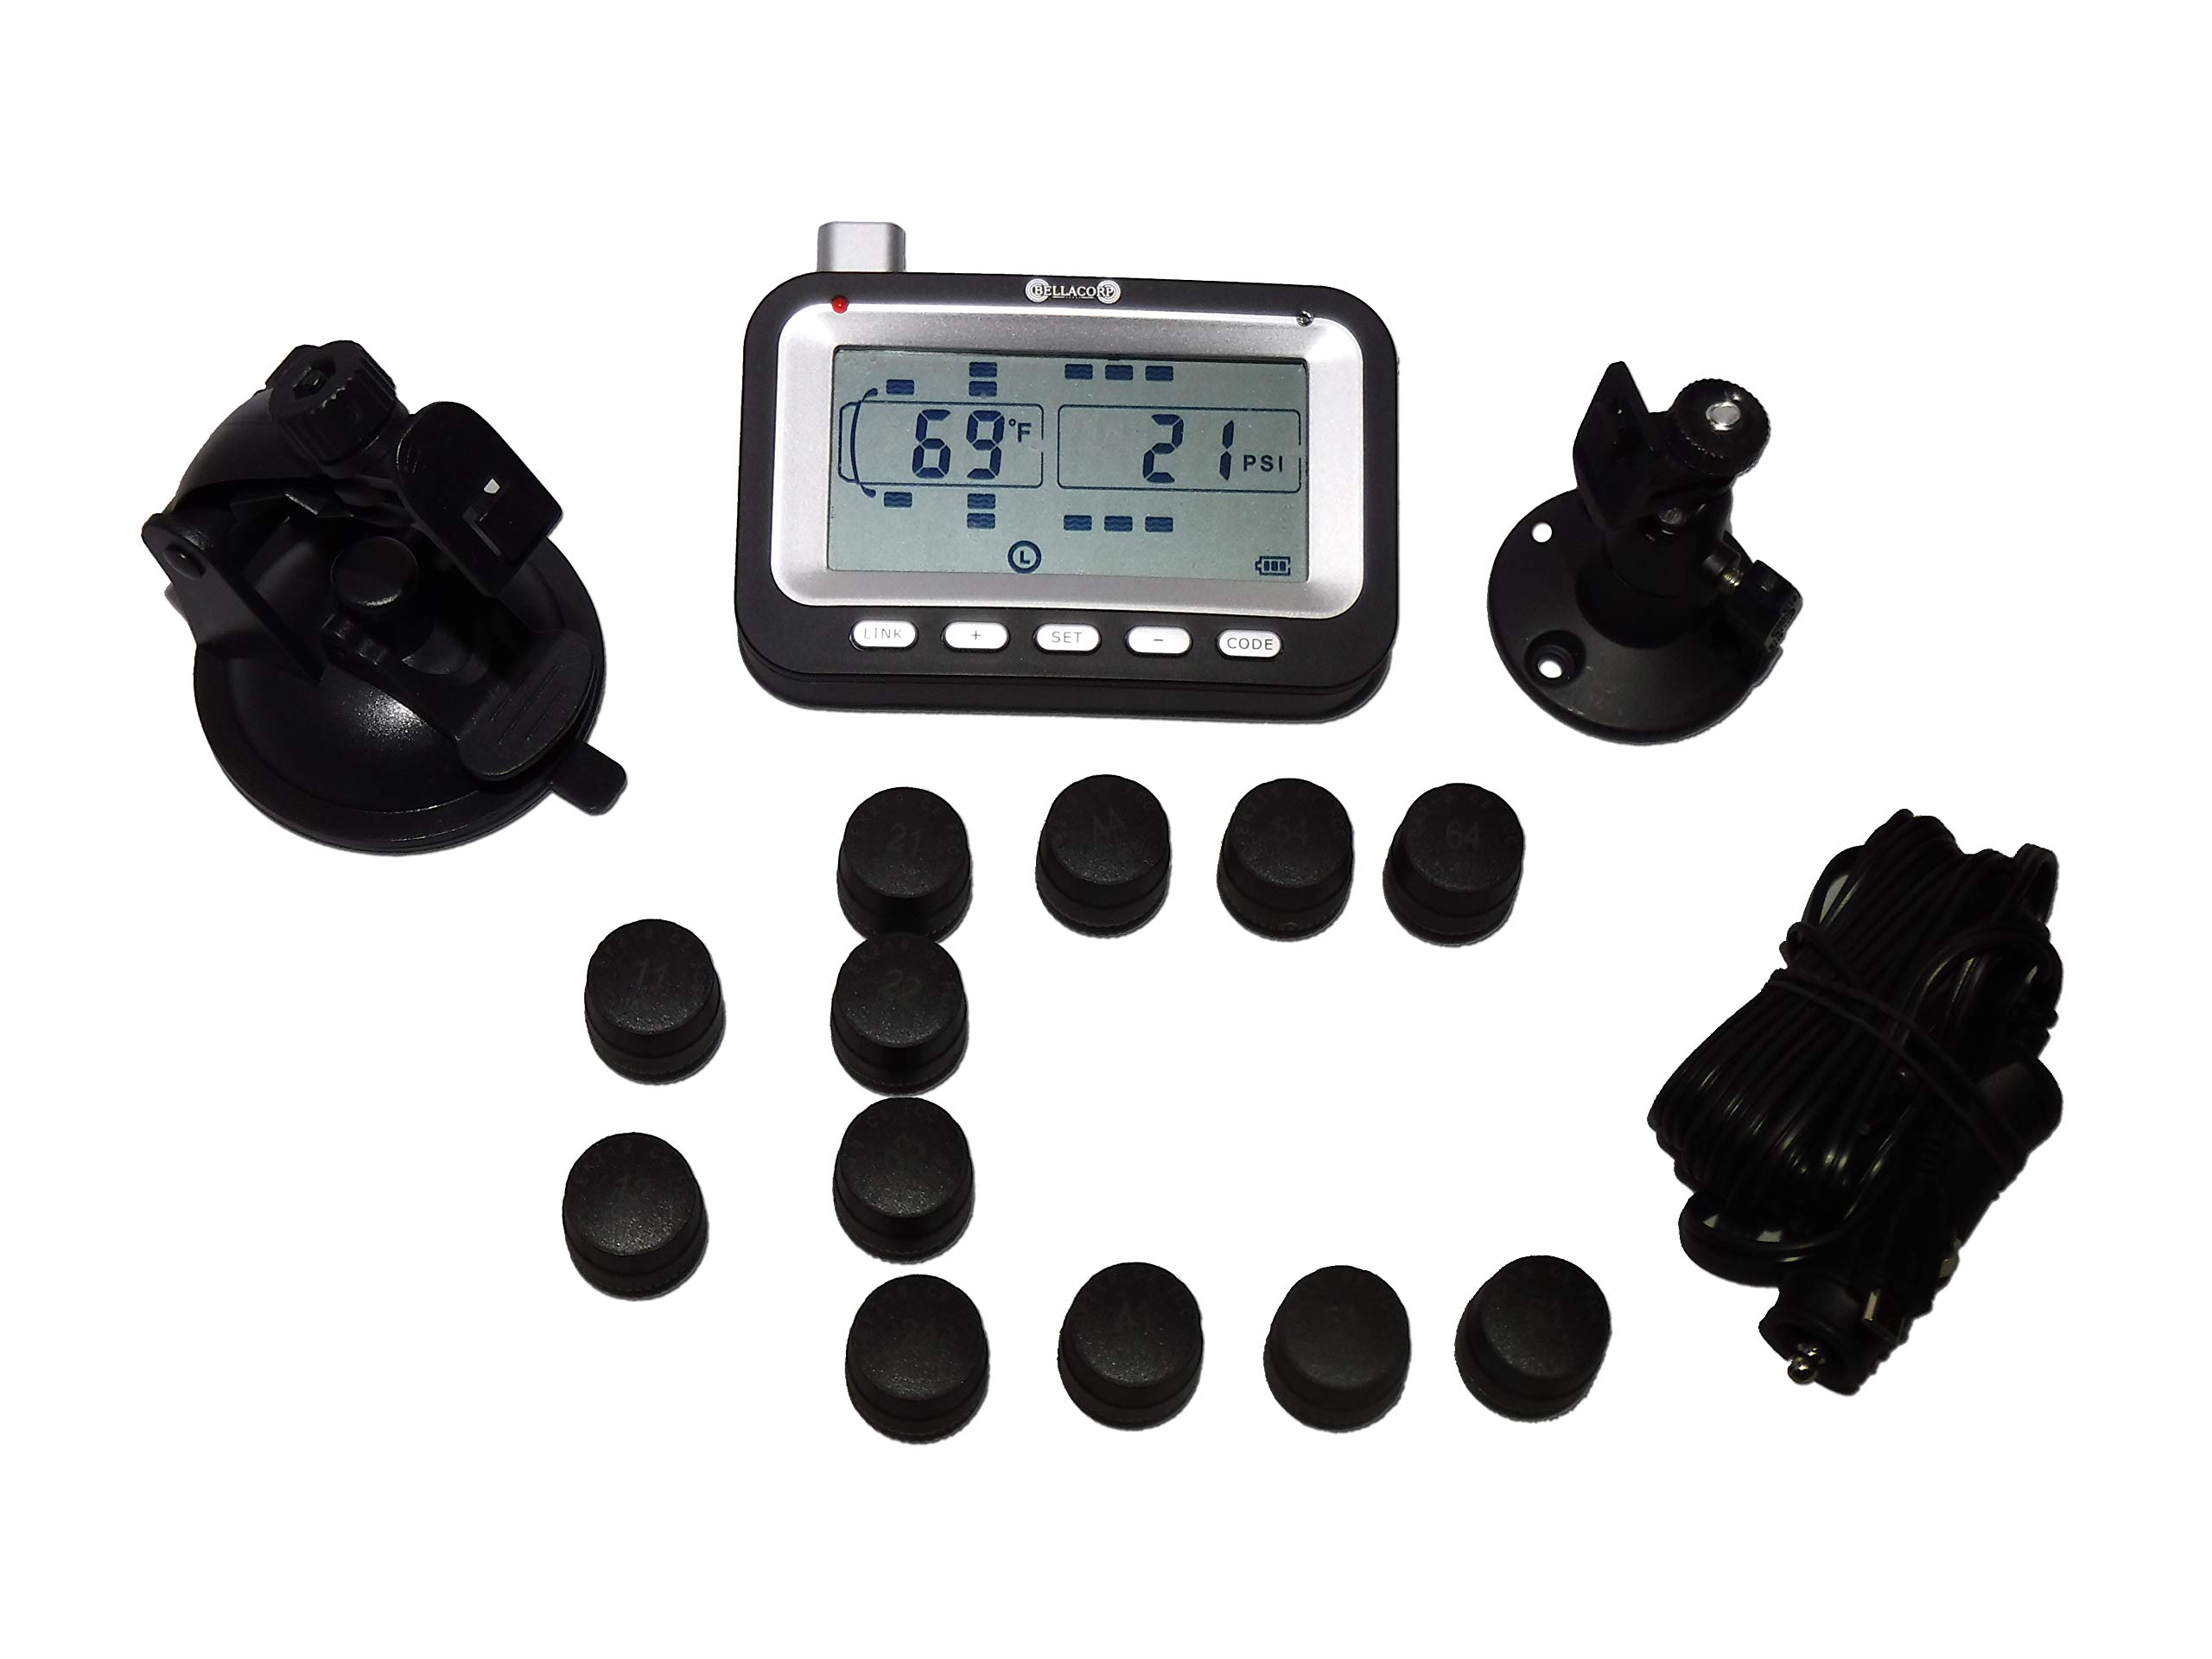 BELLACORP Tire Pressure Monitoring System TPMS Twelve (12) Sensors for Heavy Truck with Dually Axle Hauling a Triple Axle Fifth Wheel, Trailer, Toy Hauler, or Box Trailer